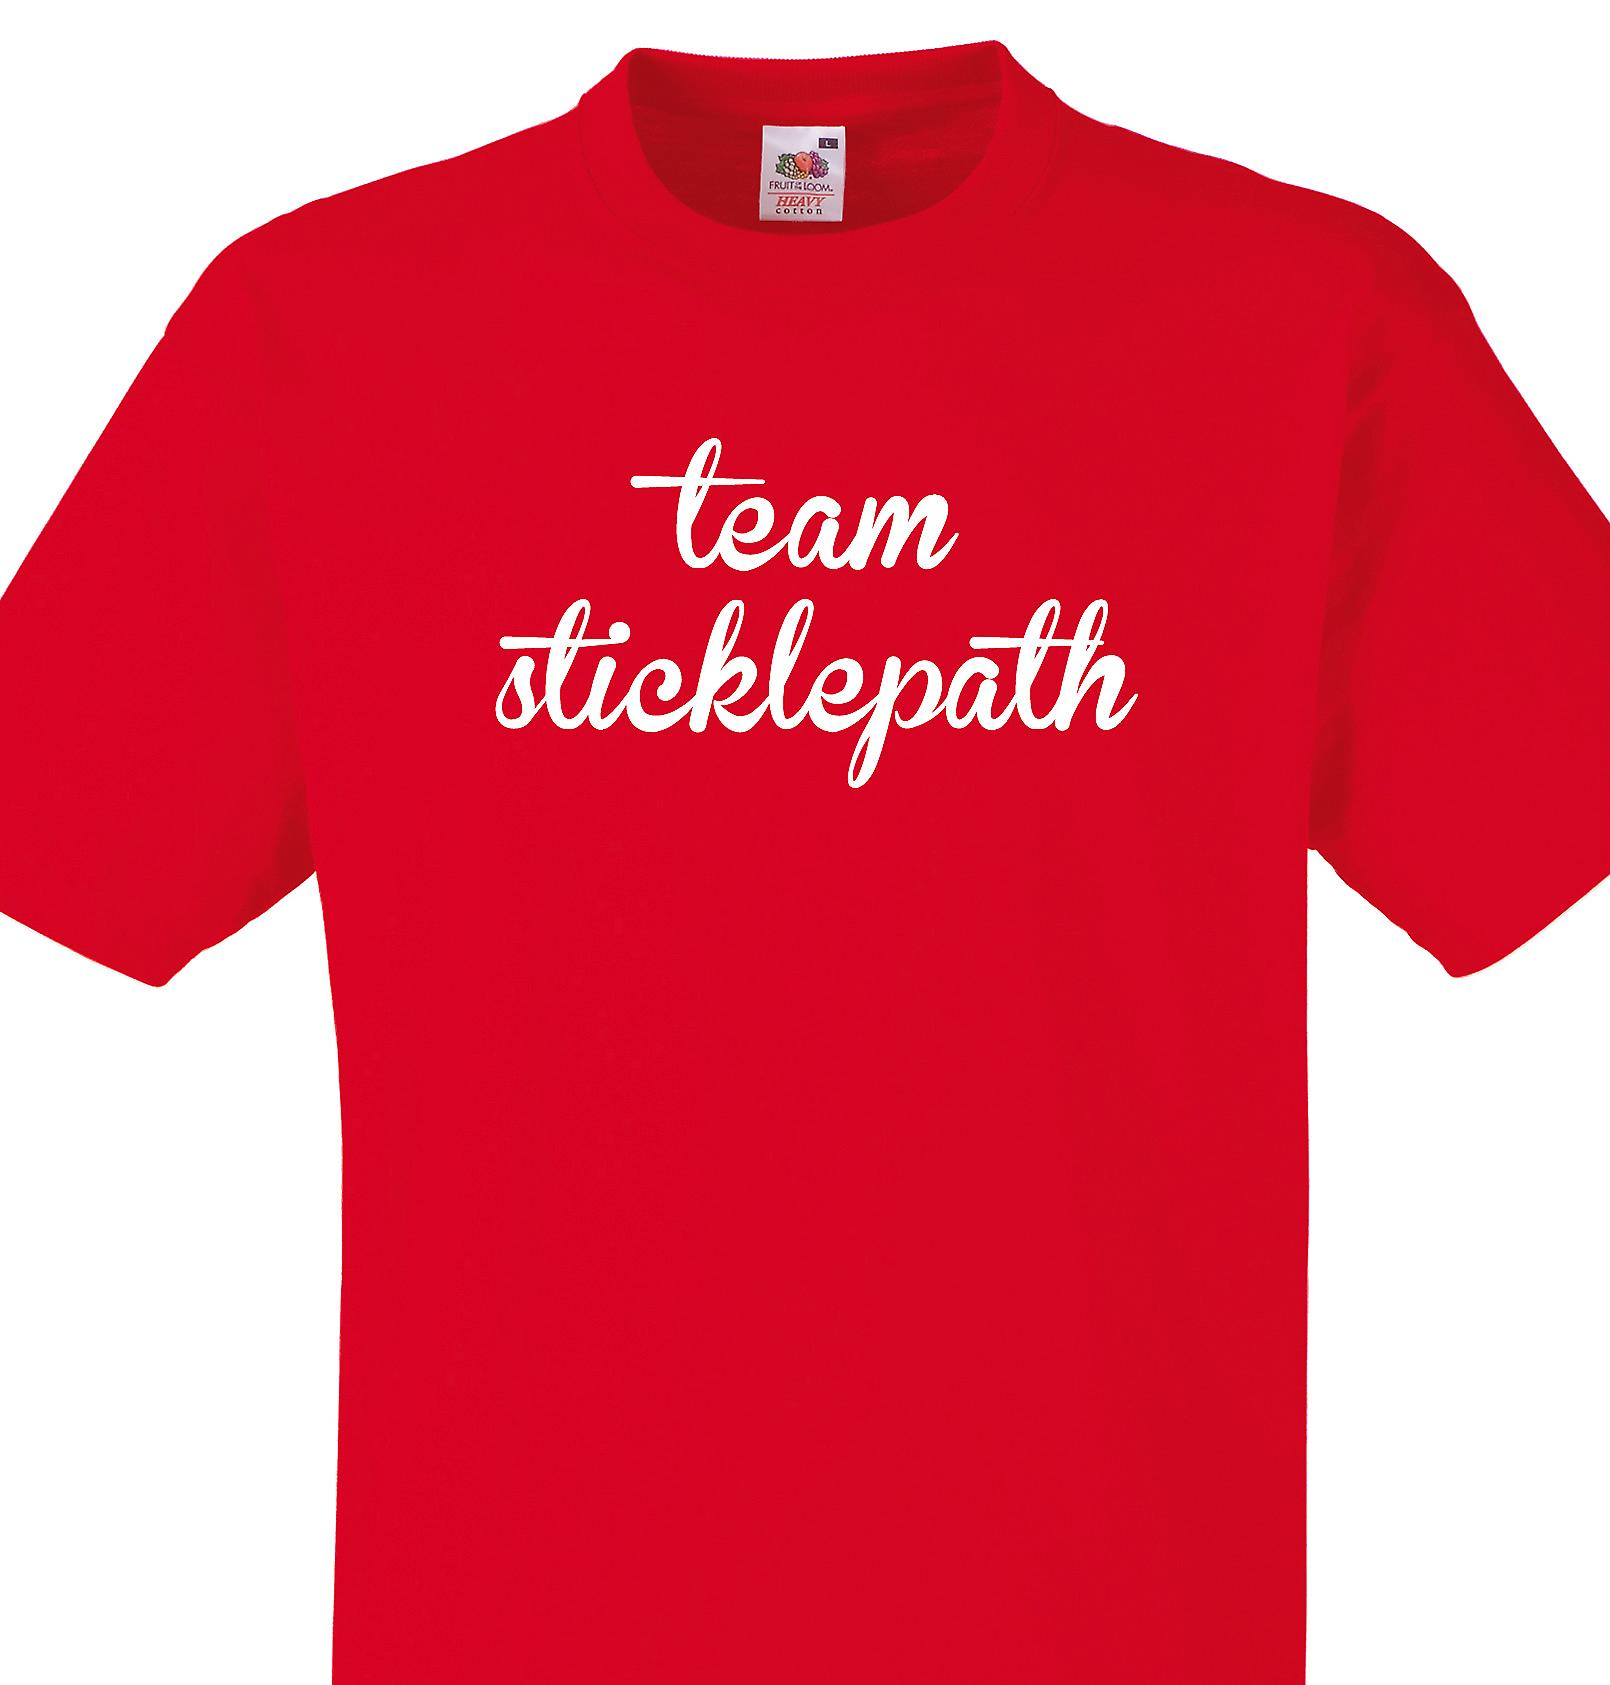 Team Sticklepath Red T shirt